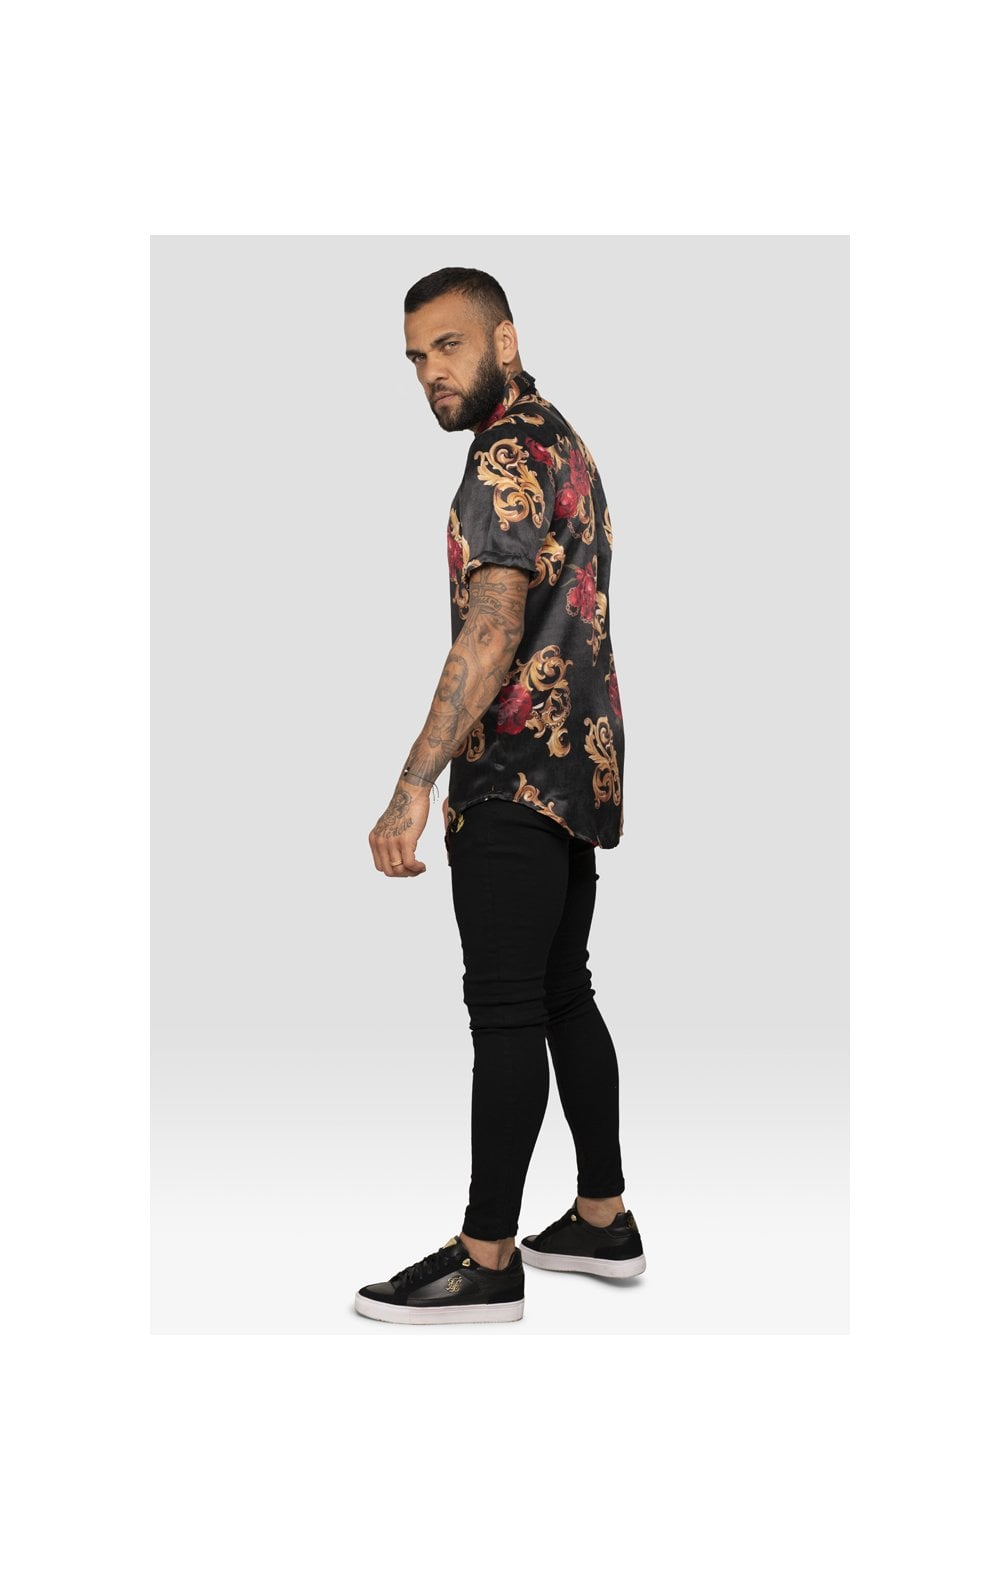 SikSilk x Dani Alves Resort Shirt - Floral Animal (6)